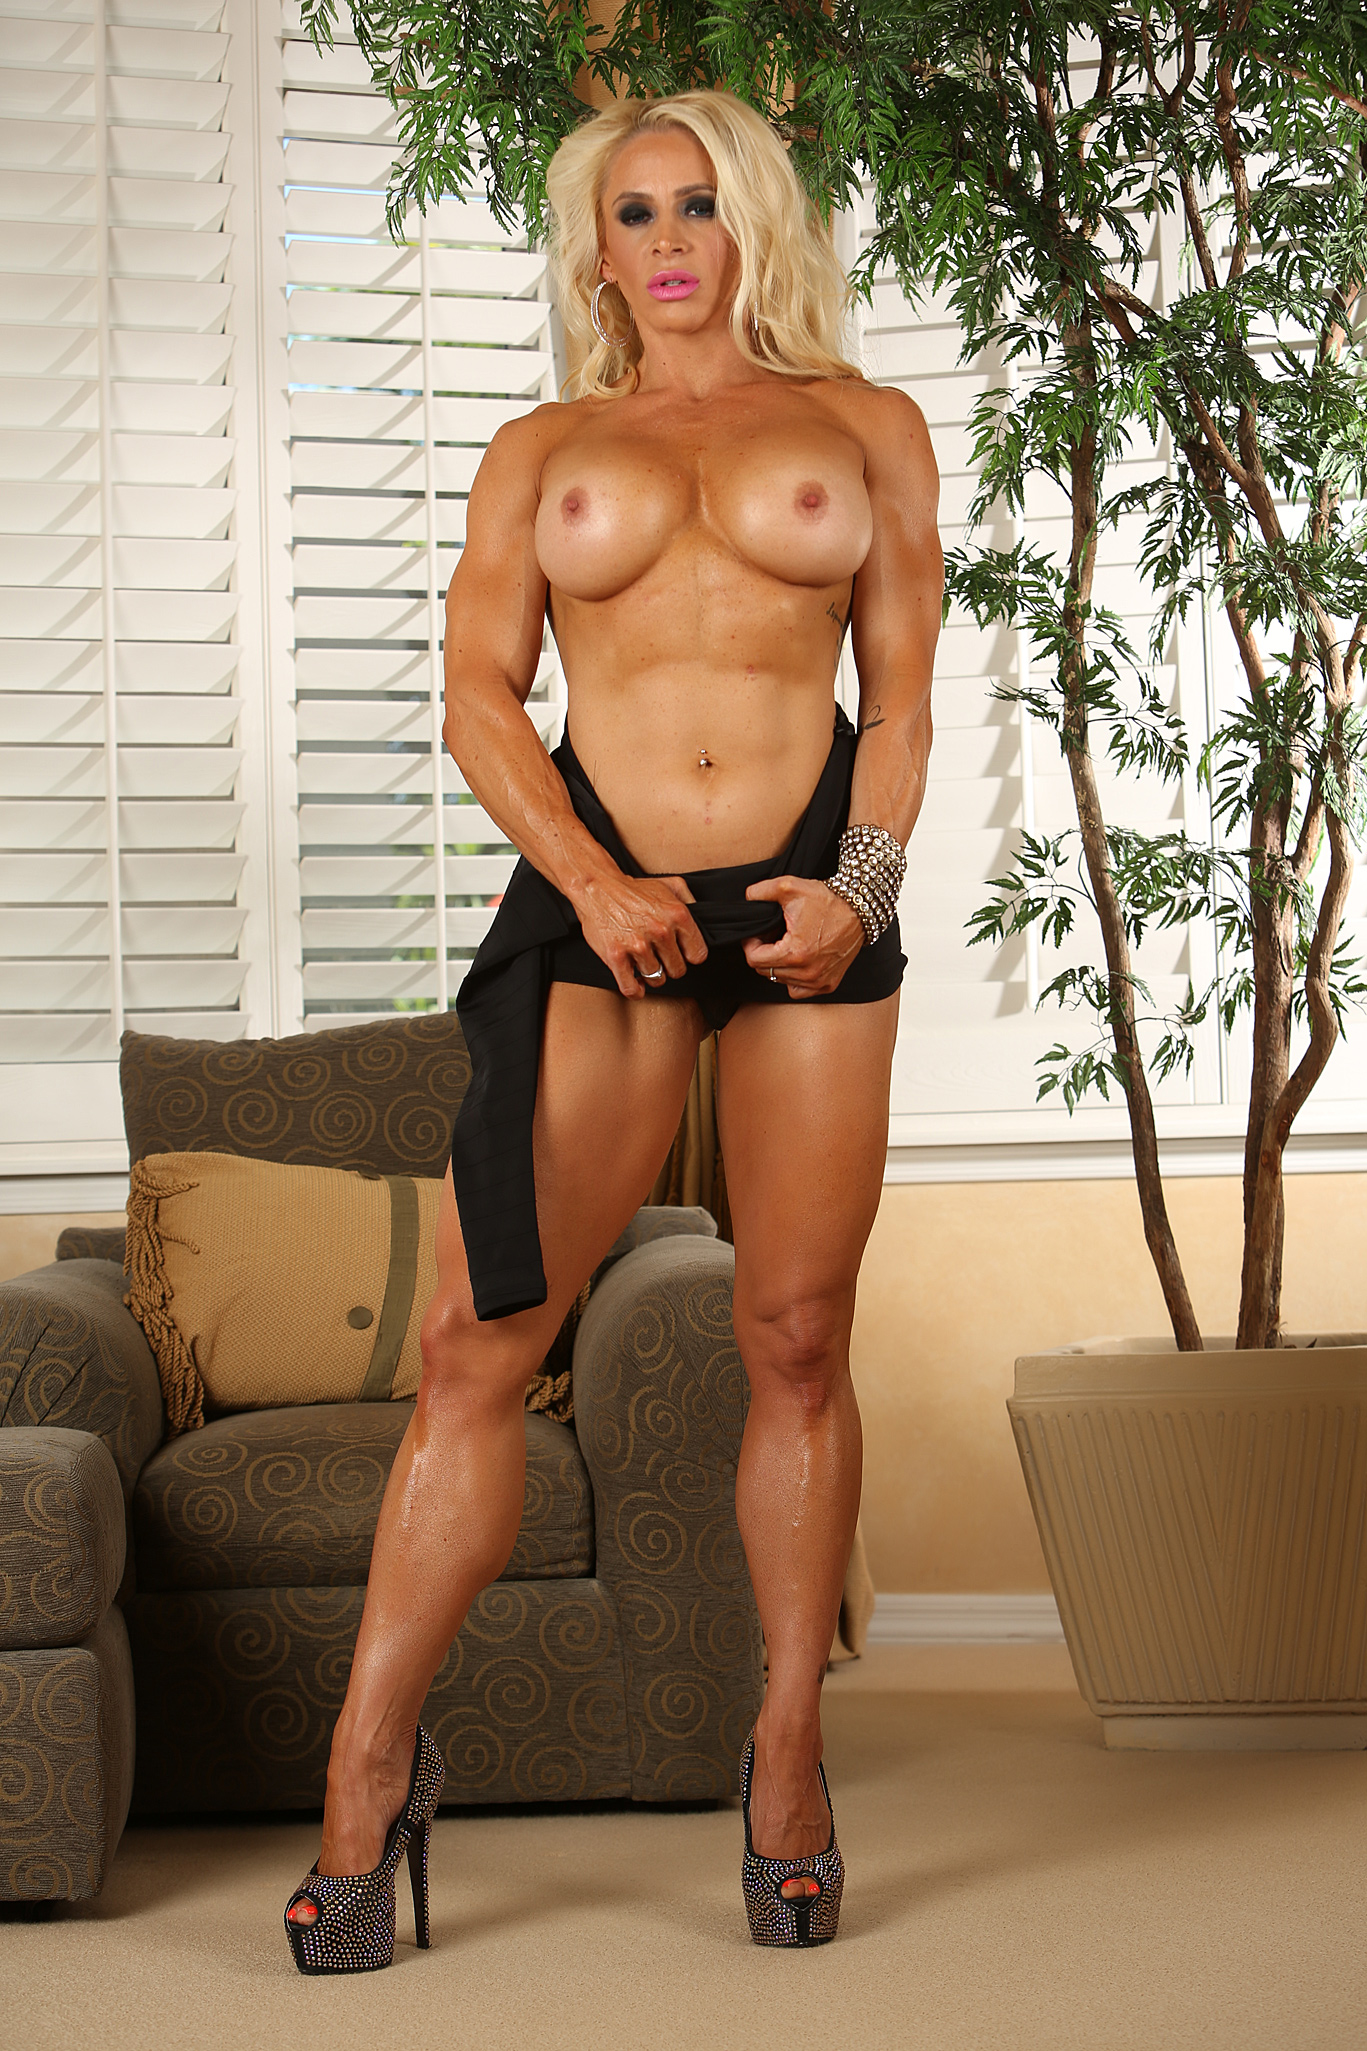 With jill jaxen aziani iron remarkable, this